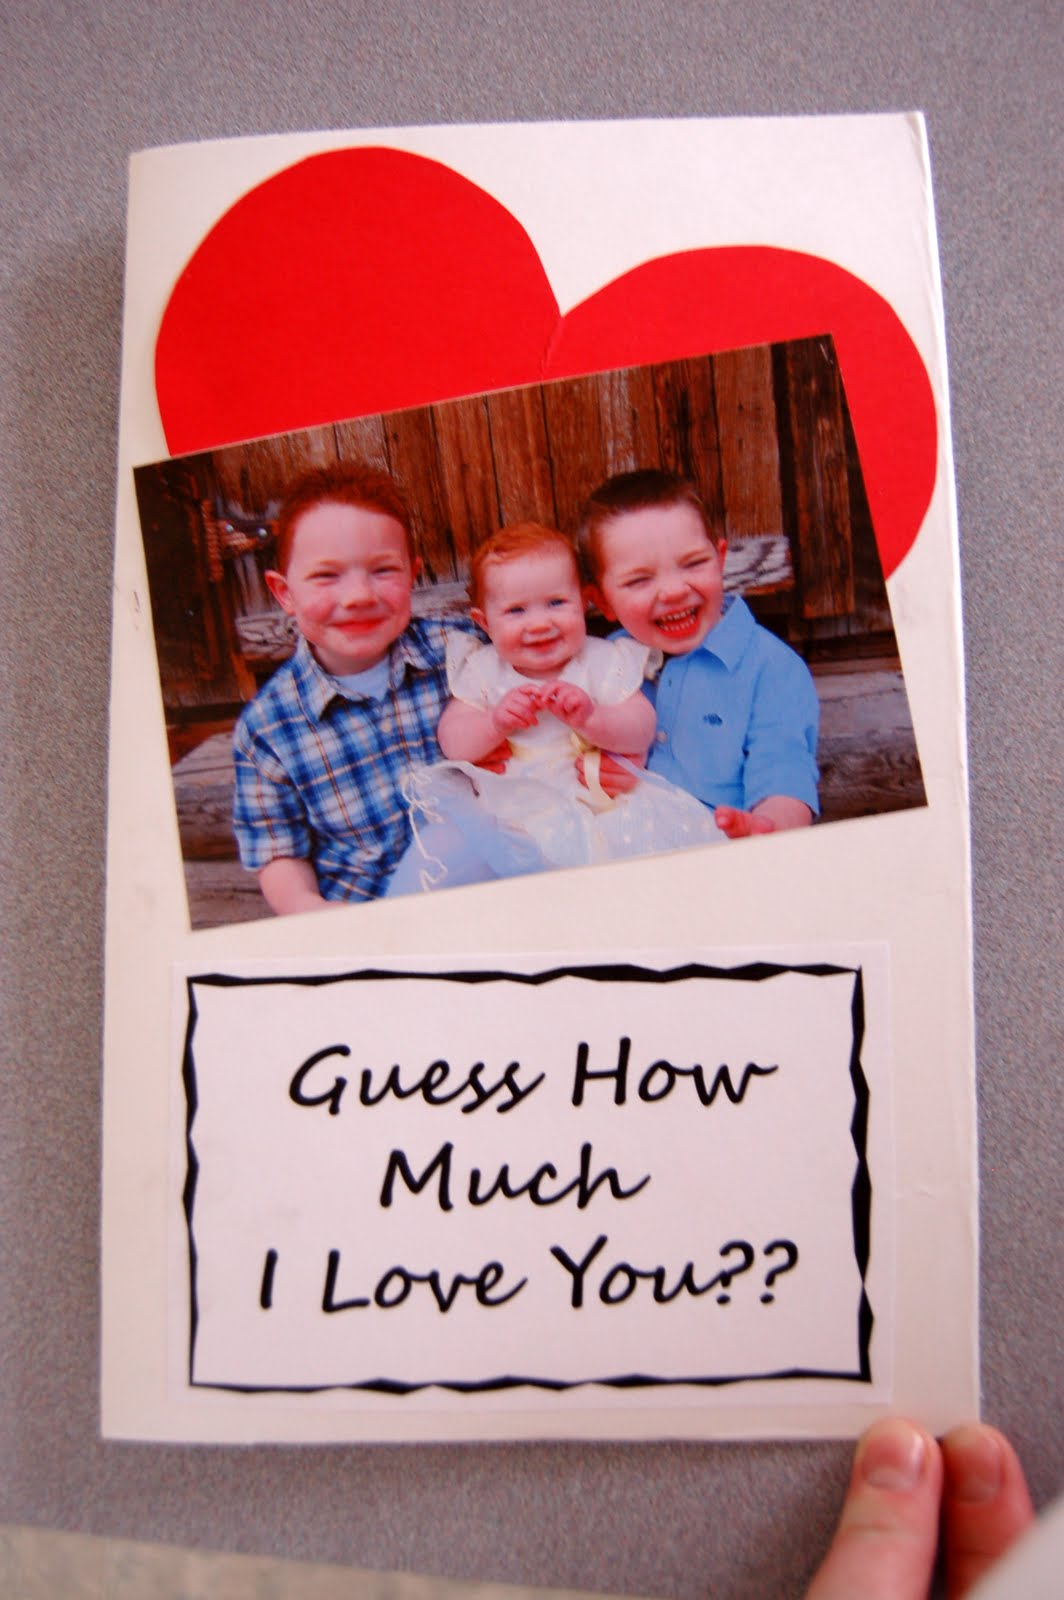 I Love You Crafts Storytime Guess How Much I Love You Mothers Day Craft I